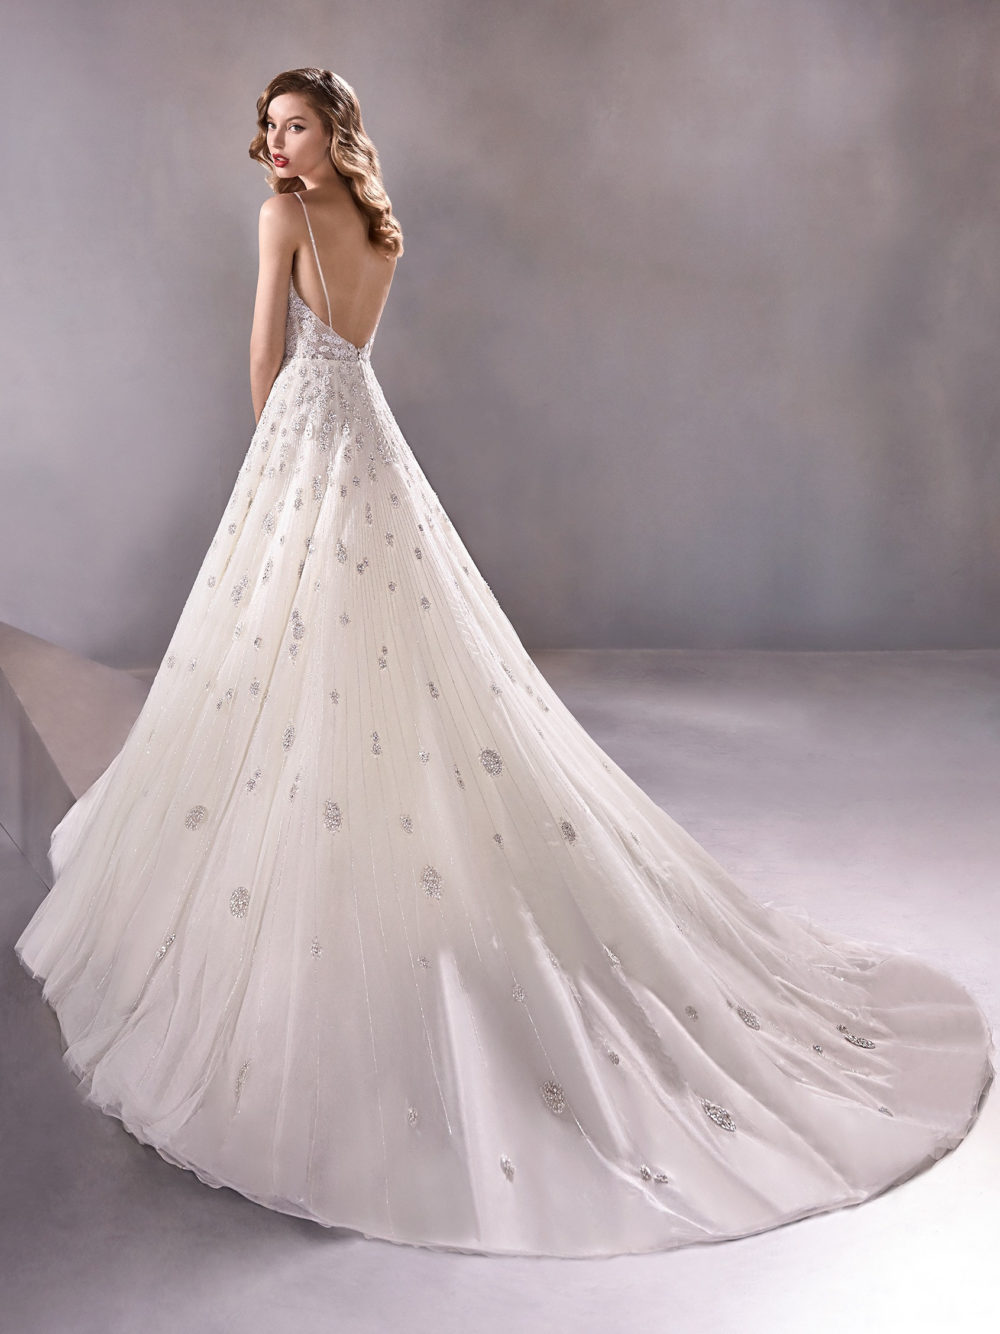 Pronovias Shining Star Wedding Gown Dress 2020 Atelier Collection back